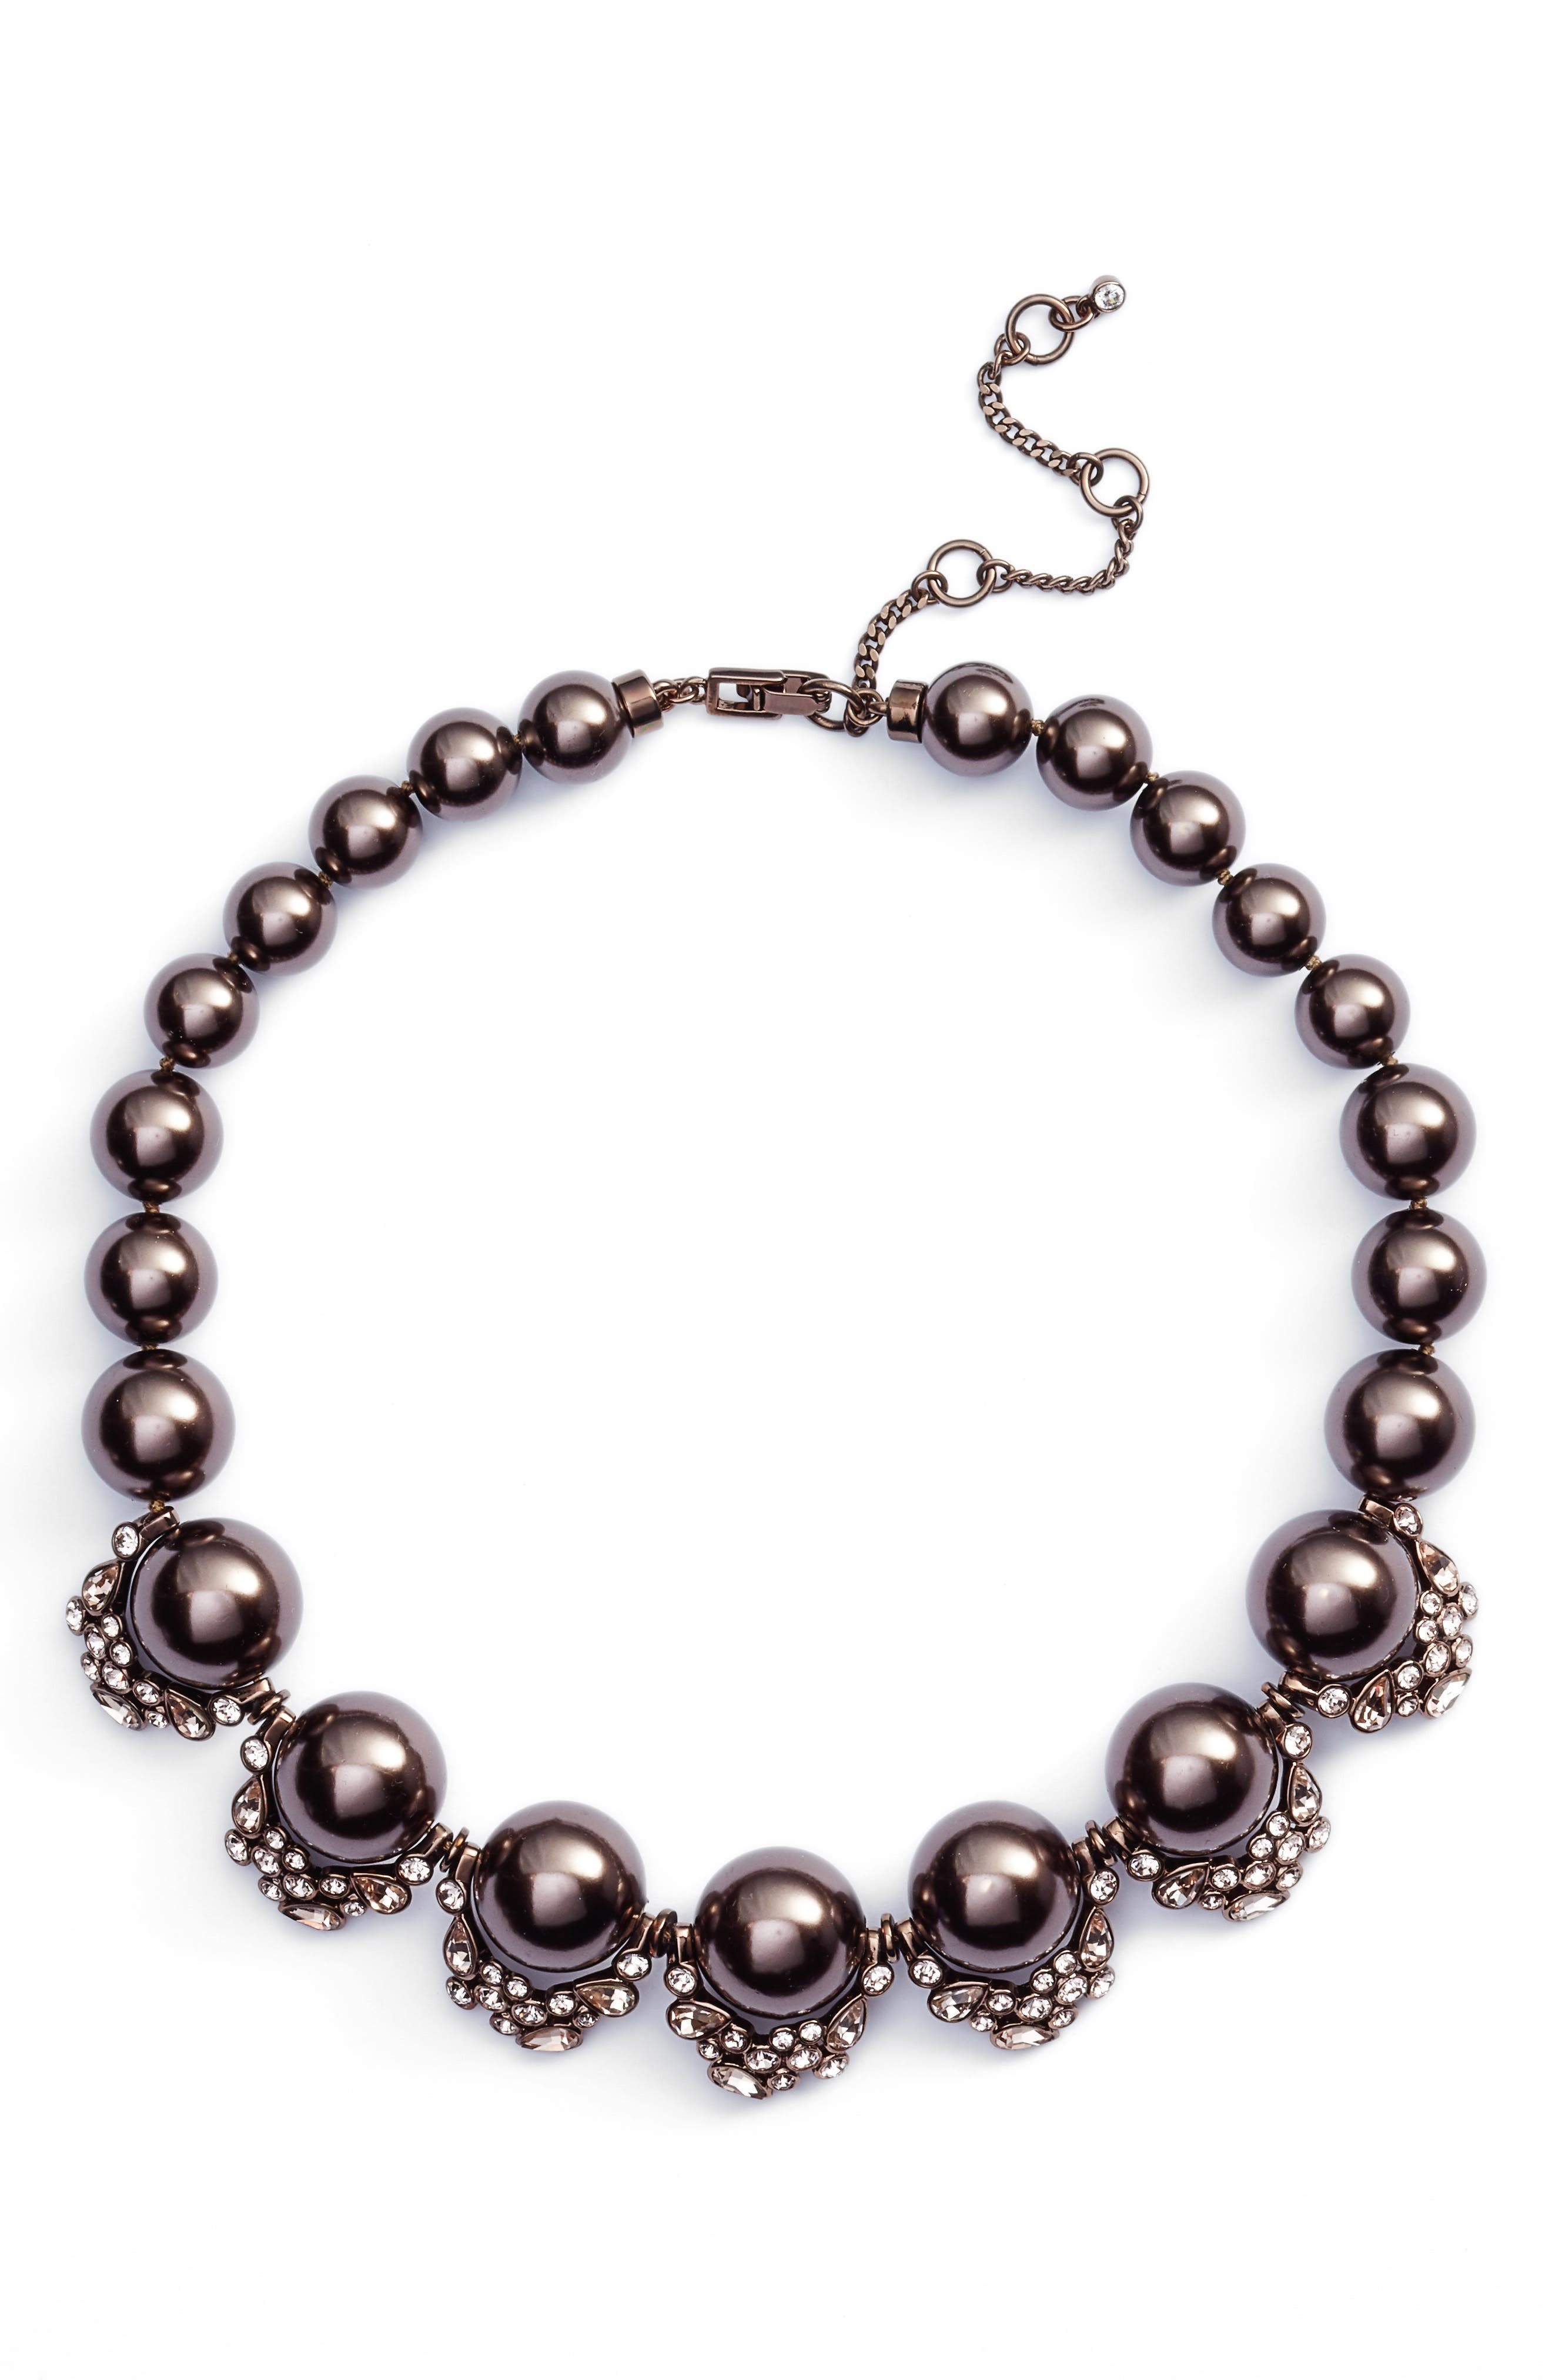 Main Image - Givenchy Imitation Pearl & Crystal Collar Necklace